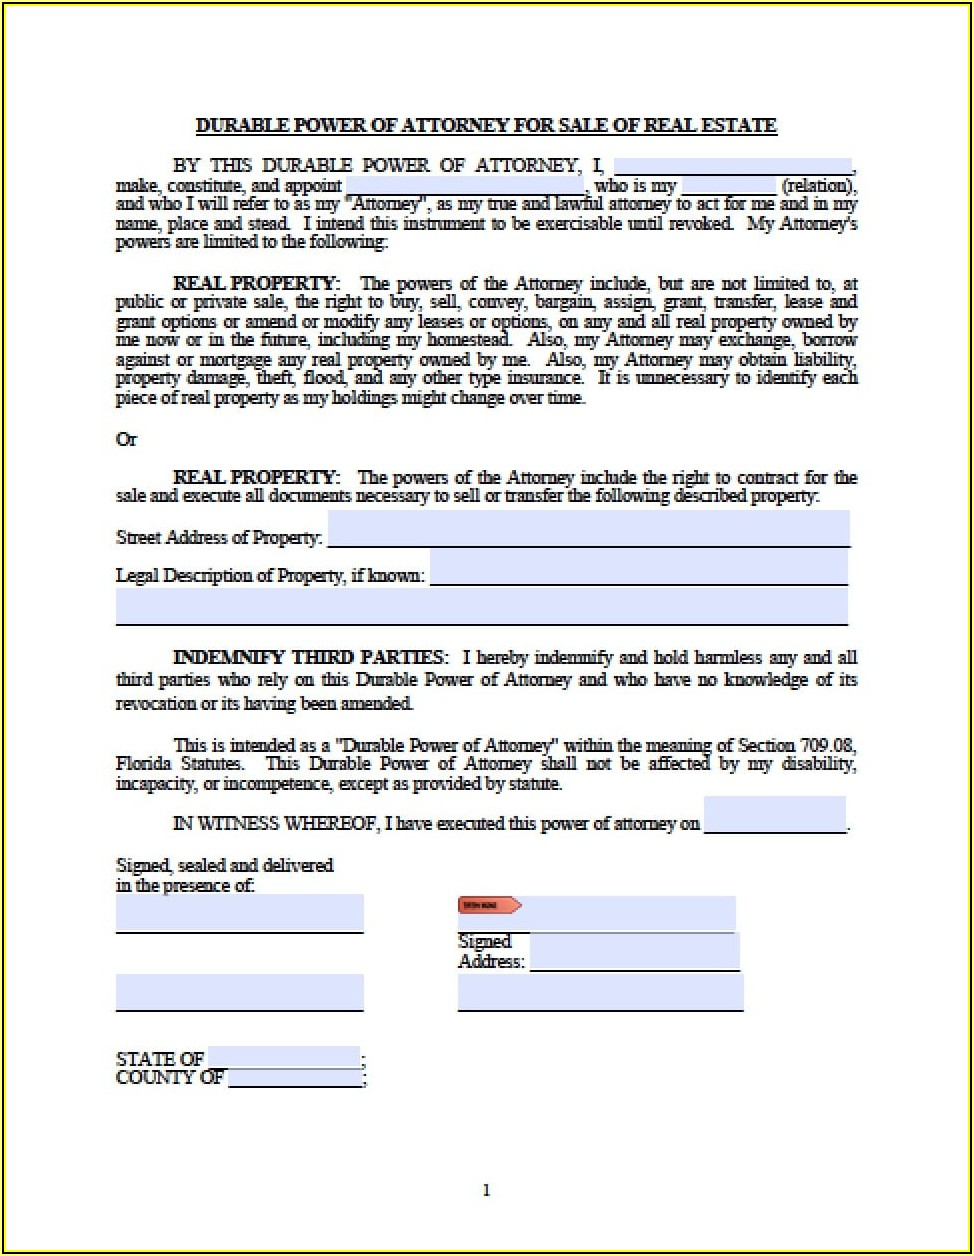 Florida Real Estate Transfer Tax Forms